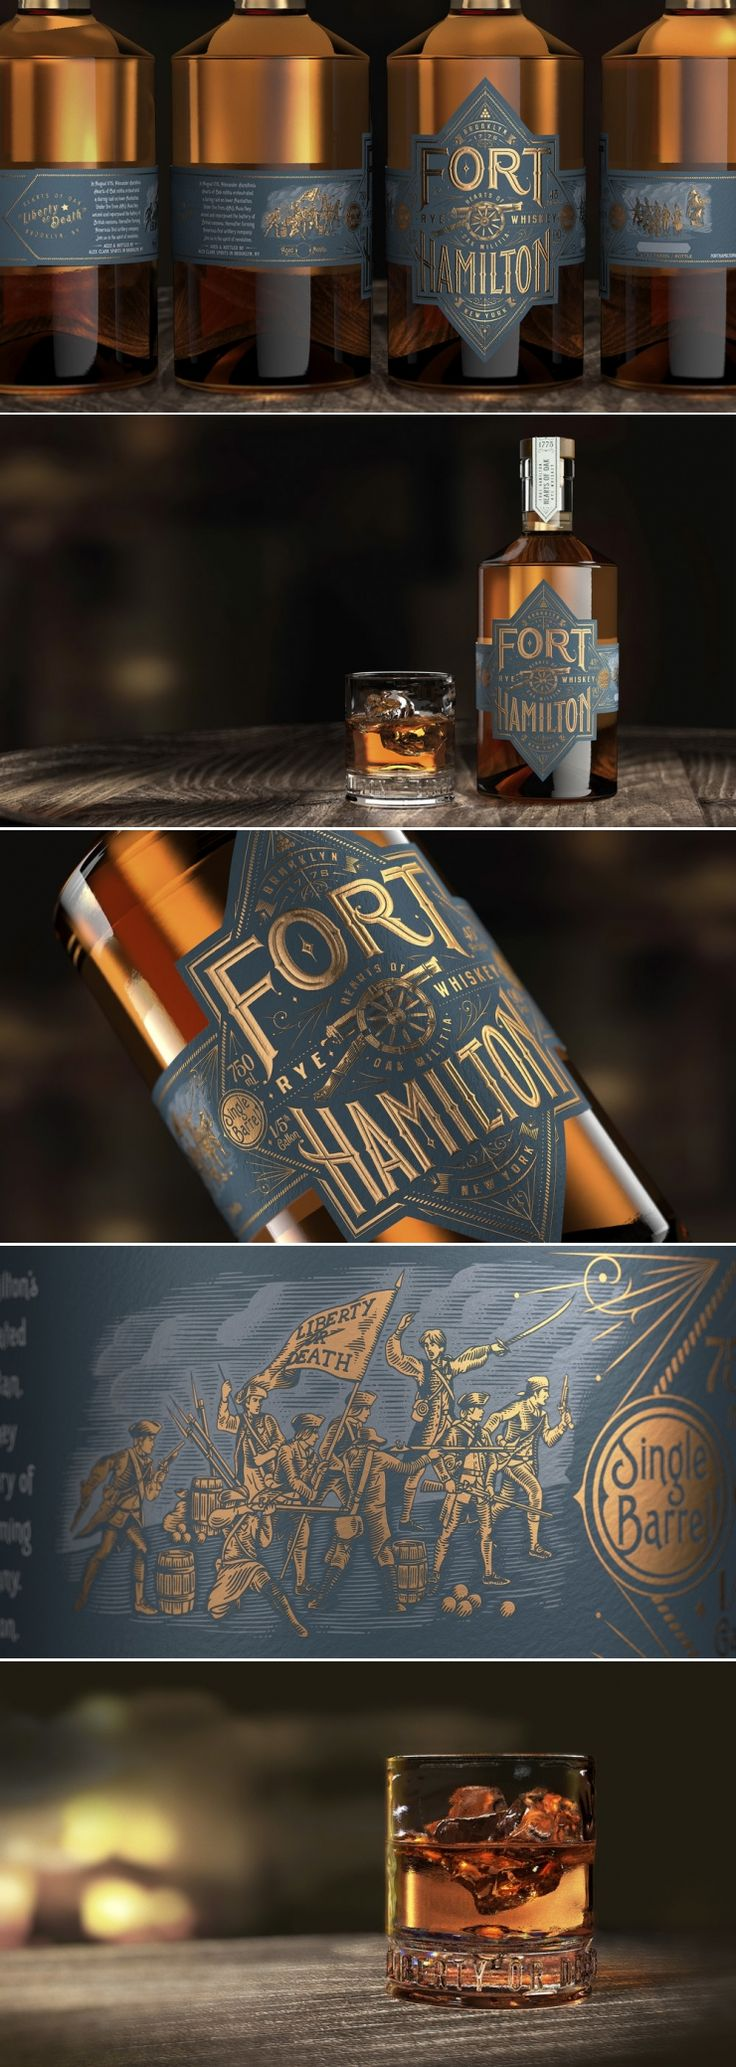 Check Out the Sophisticated Look of Fort Hamilton Whiskey — The Dieline | Packaging & Branding Design & Innovation News